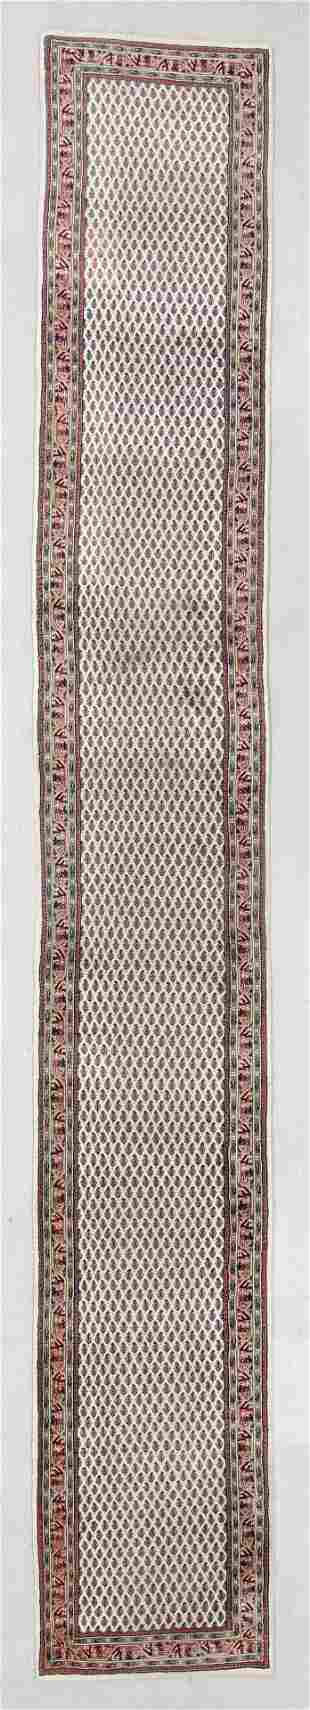 Serabend Rug, India, Mid/Late 20th C., 2'9'' x 19'7''